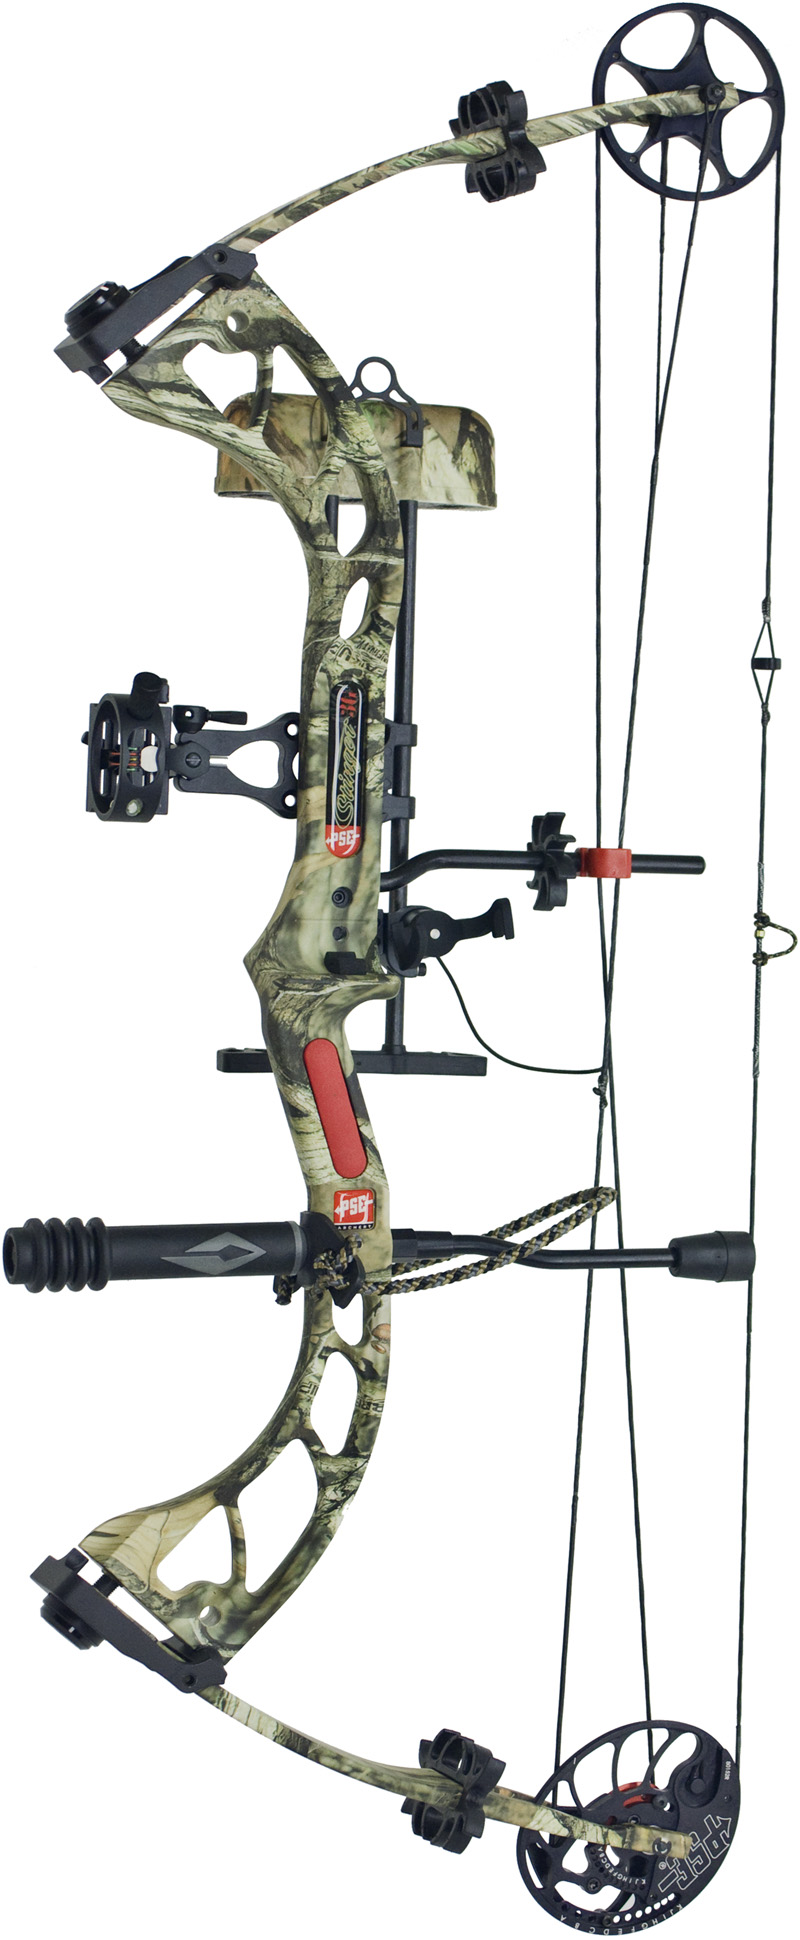 PSE Stinger Kit